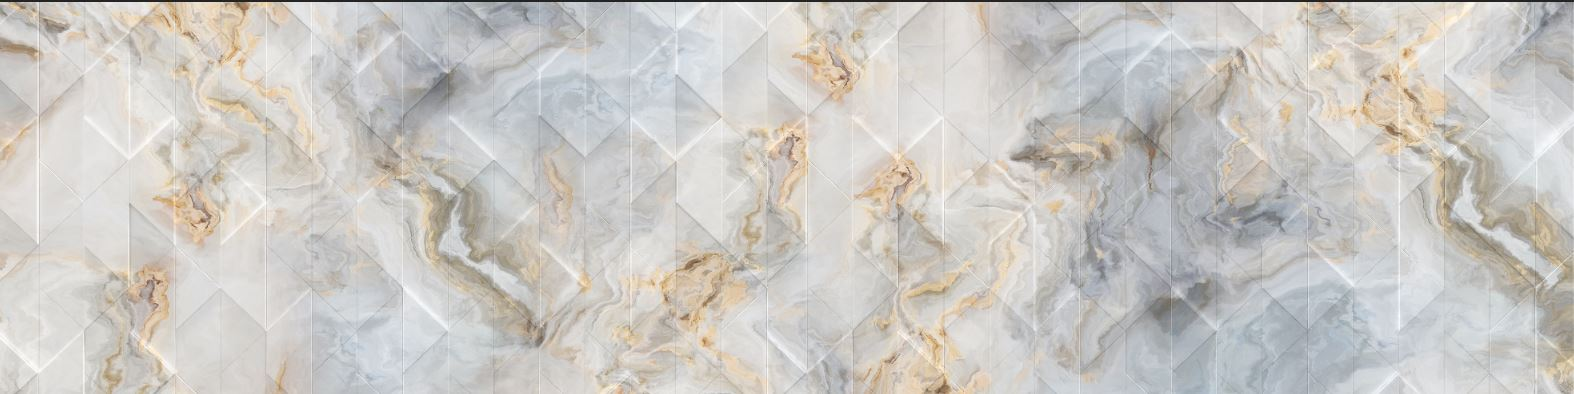 ARCH 2019-1a Marble Gold Vein Geometric